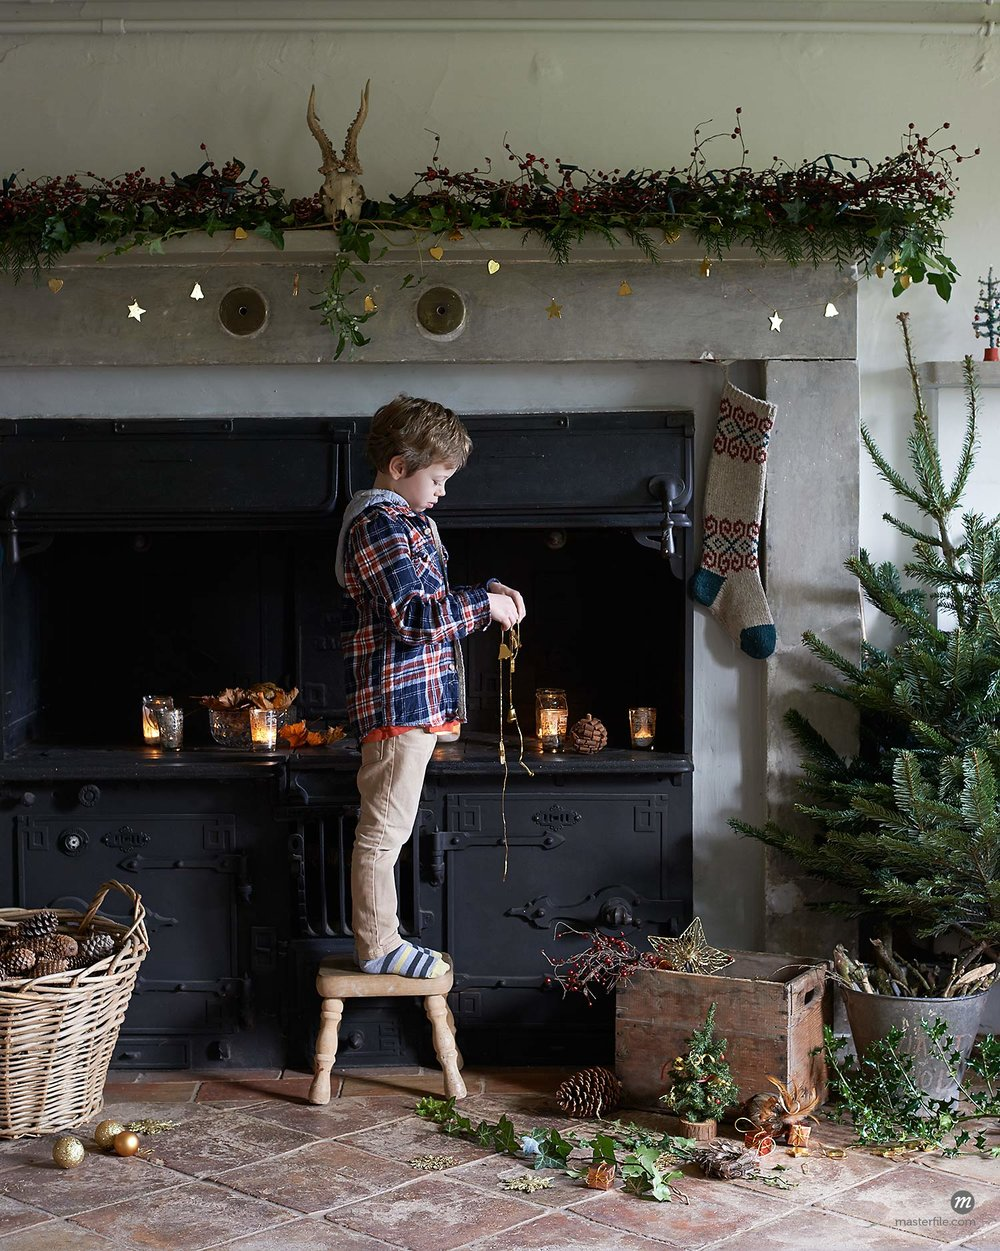 Boy decorating fireplace and mantel for Christmas © Masterfile